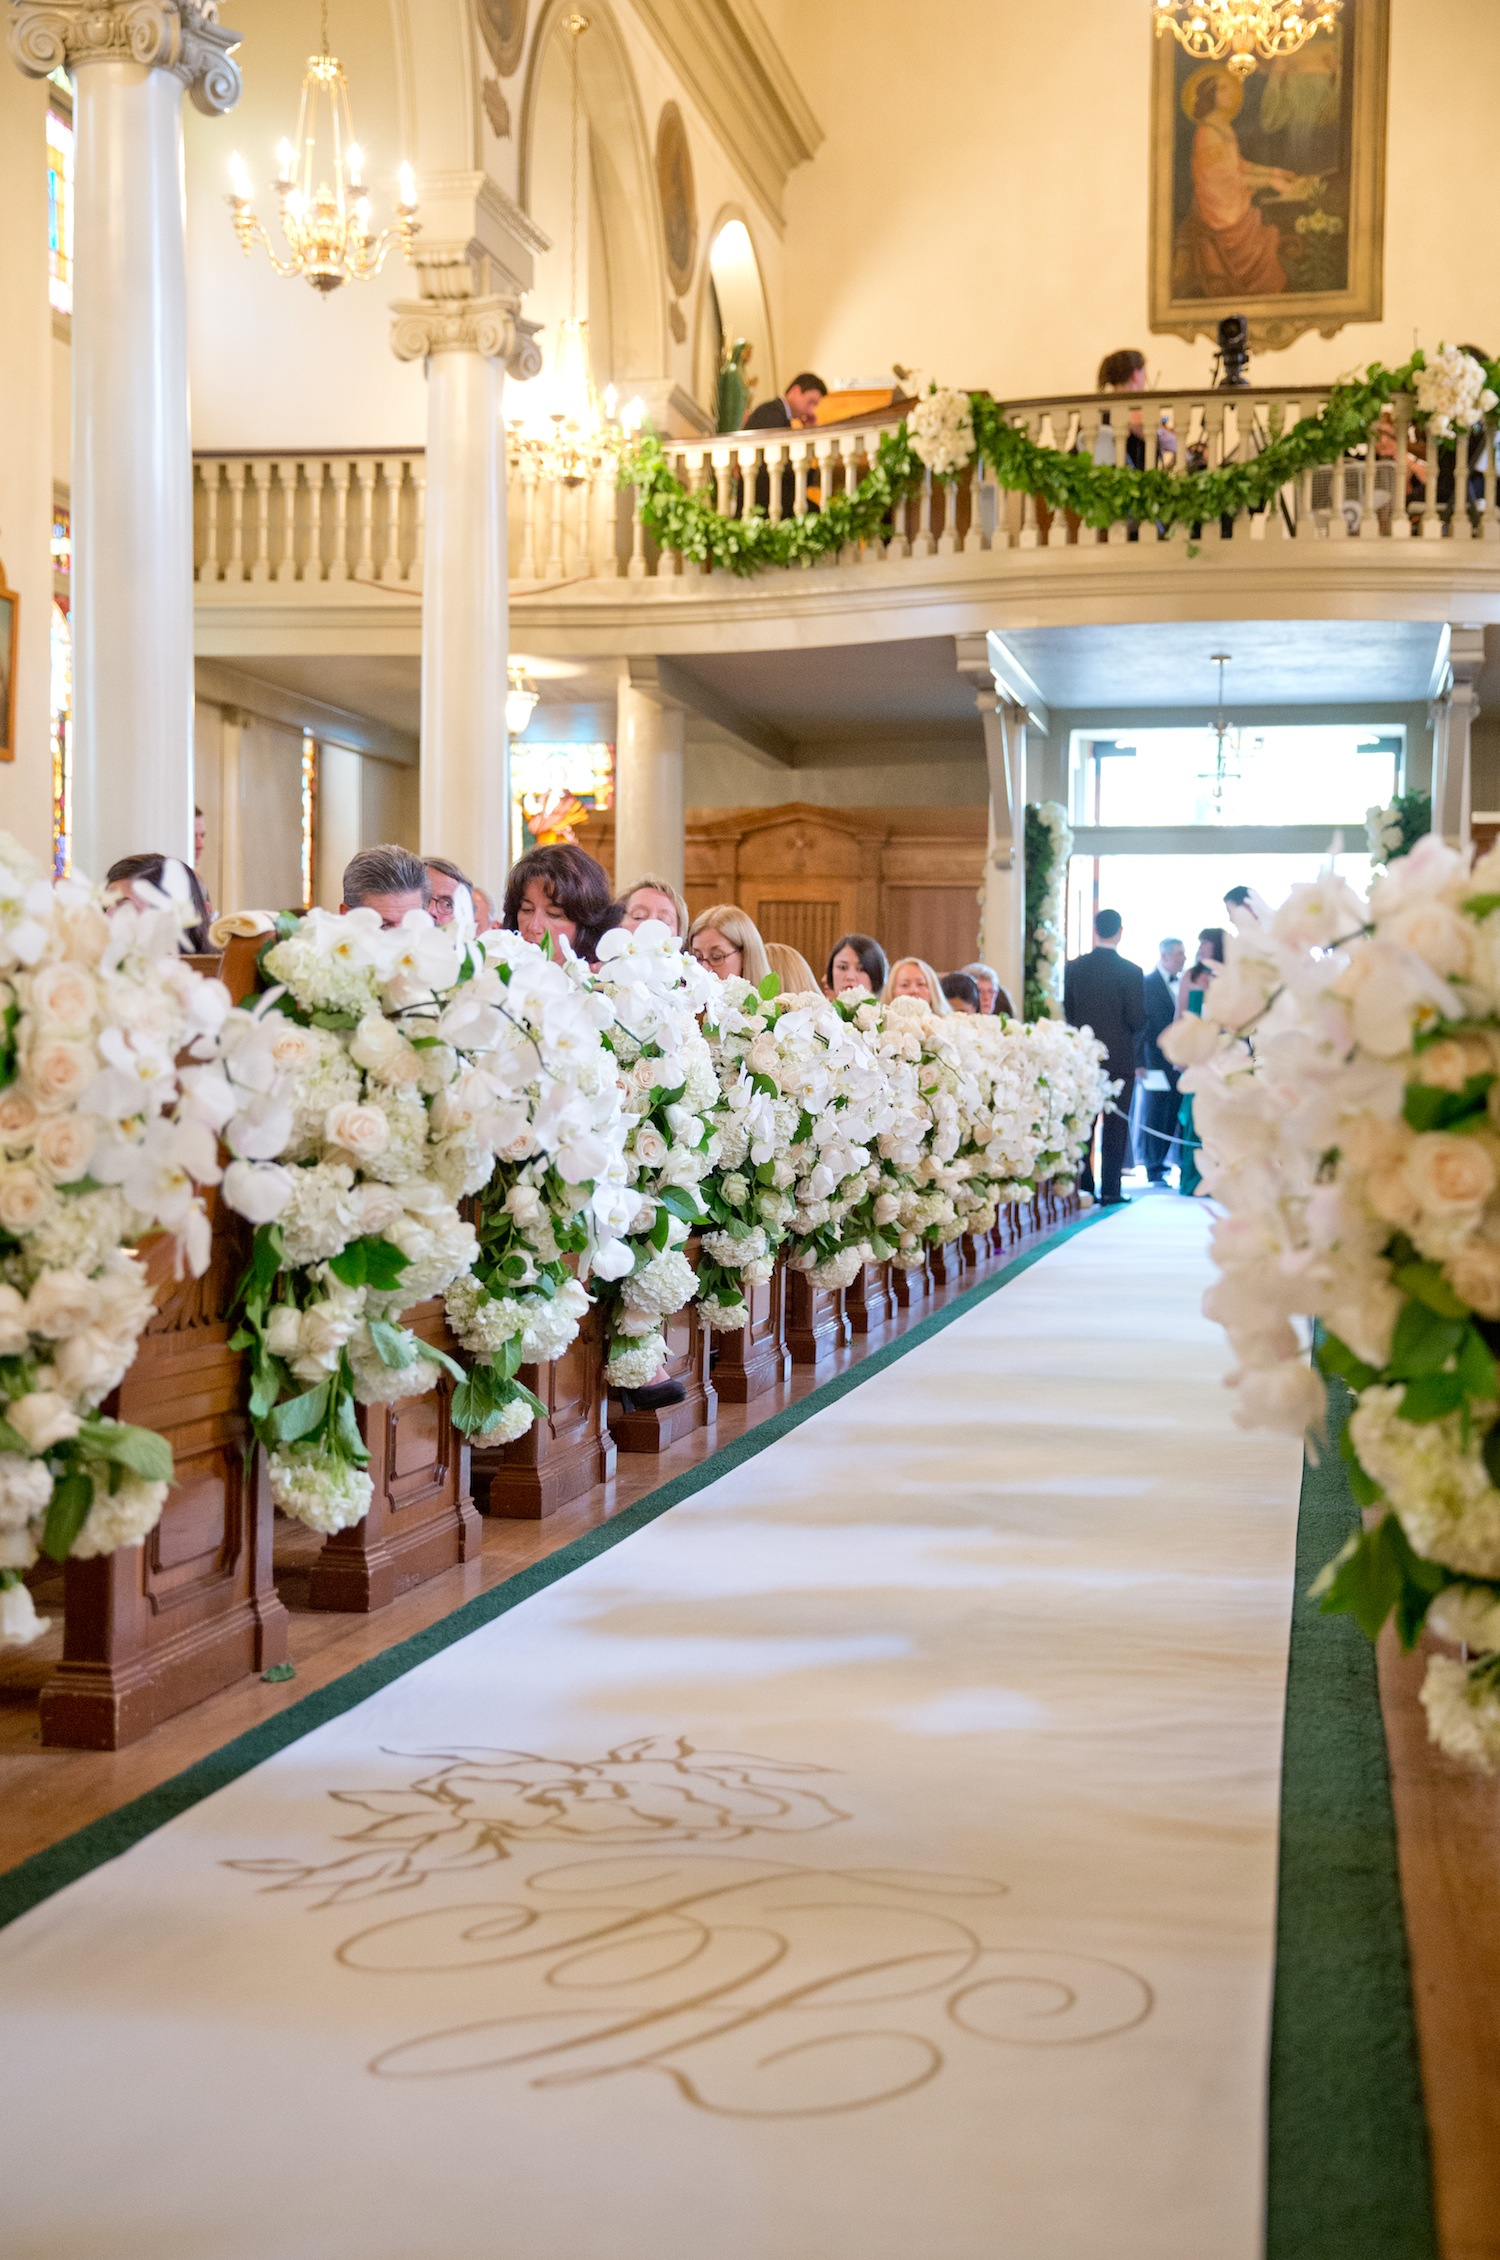 Custom aisle runner and flowers at church wedding